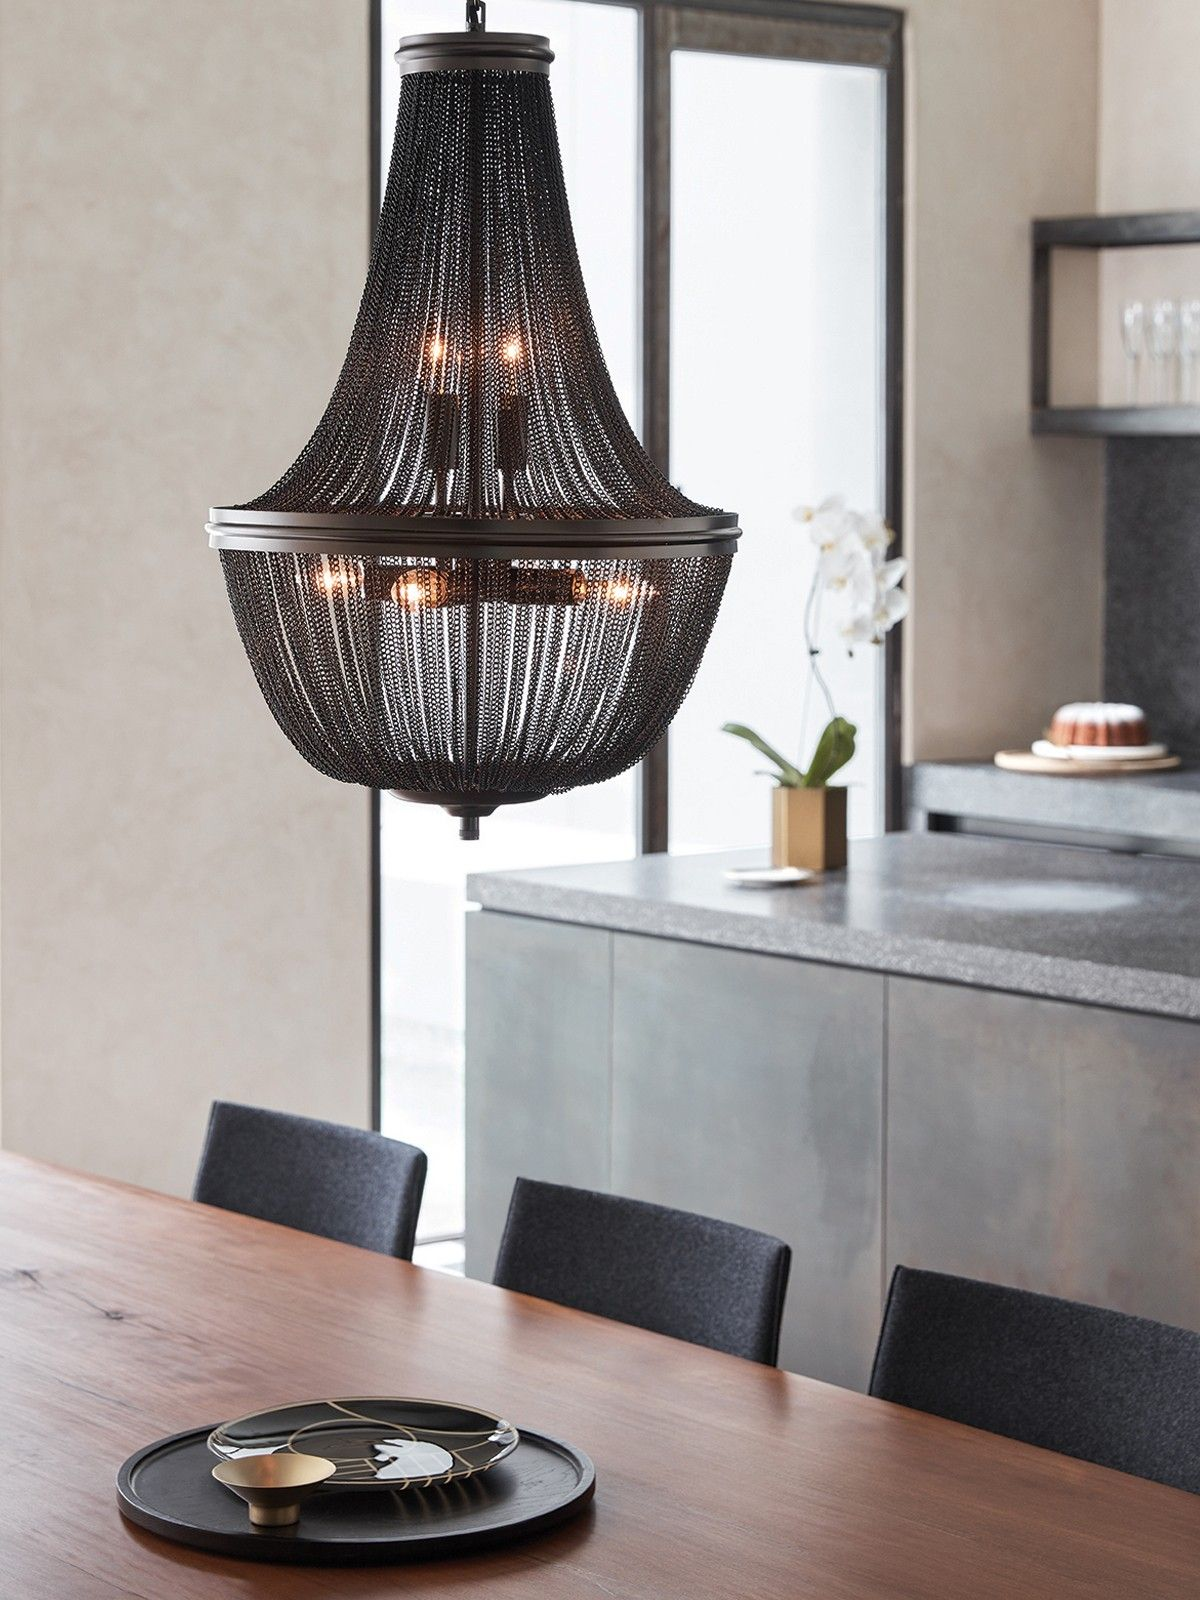 Moselle 6 light chandelier in black kitchens pinterest the beacon lighting moselle 6 light chandelier featuring black metal chain link and black metalware aloadofball Image collections